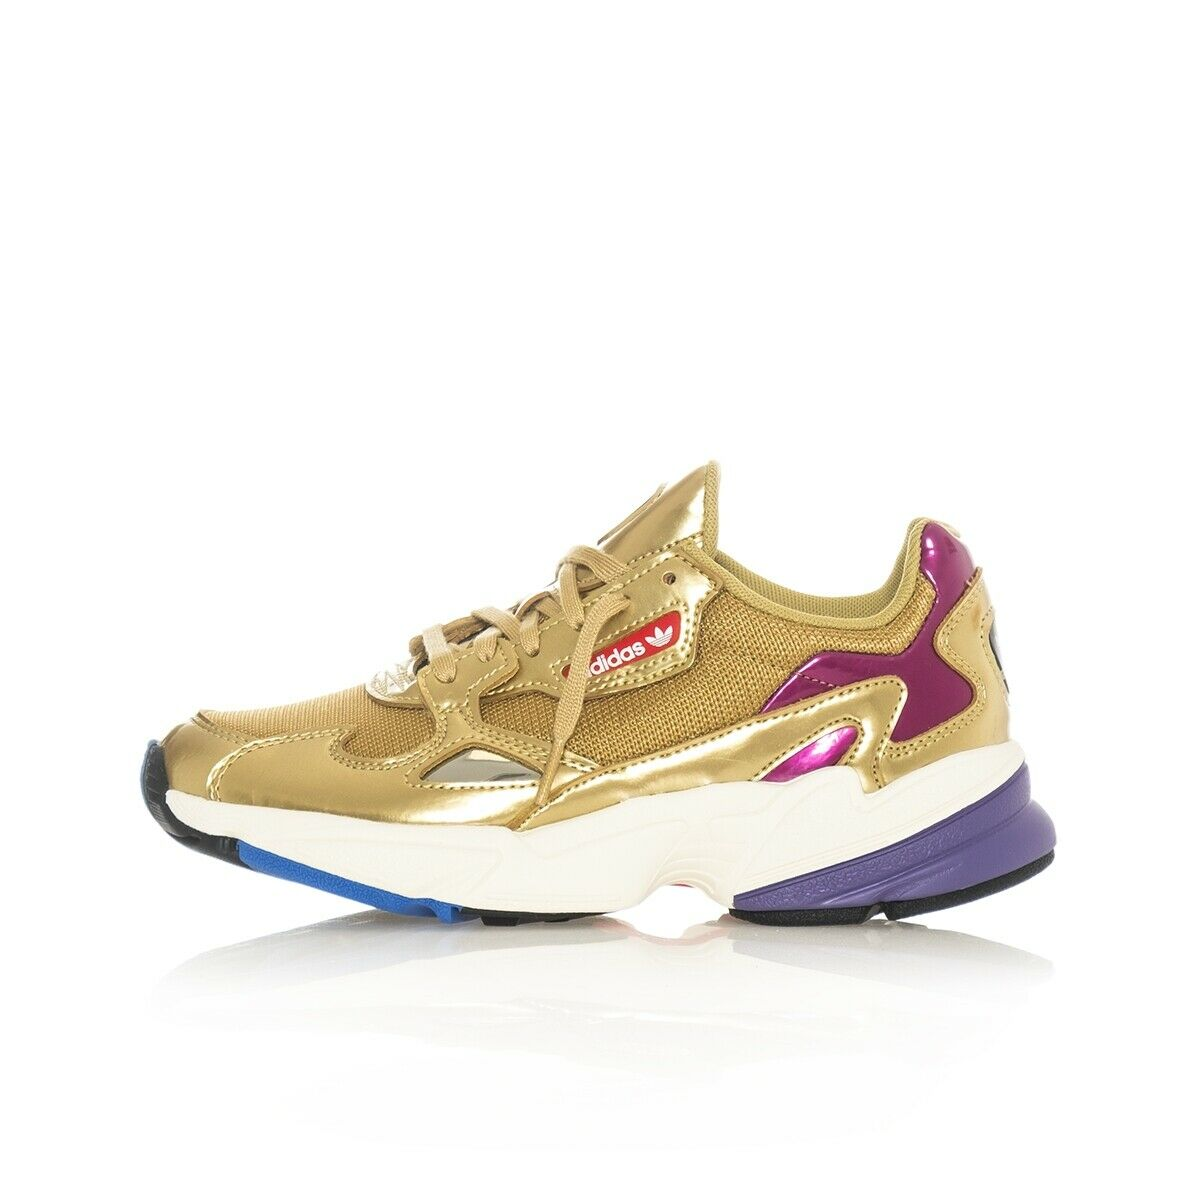 Sneakers Women Adidas Falcon W cg6247 Casual Style snkrsroom gold